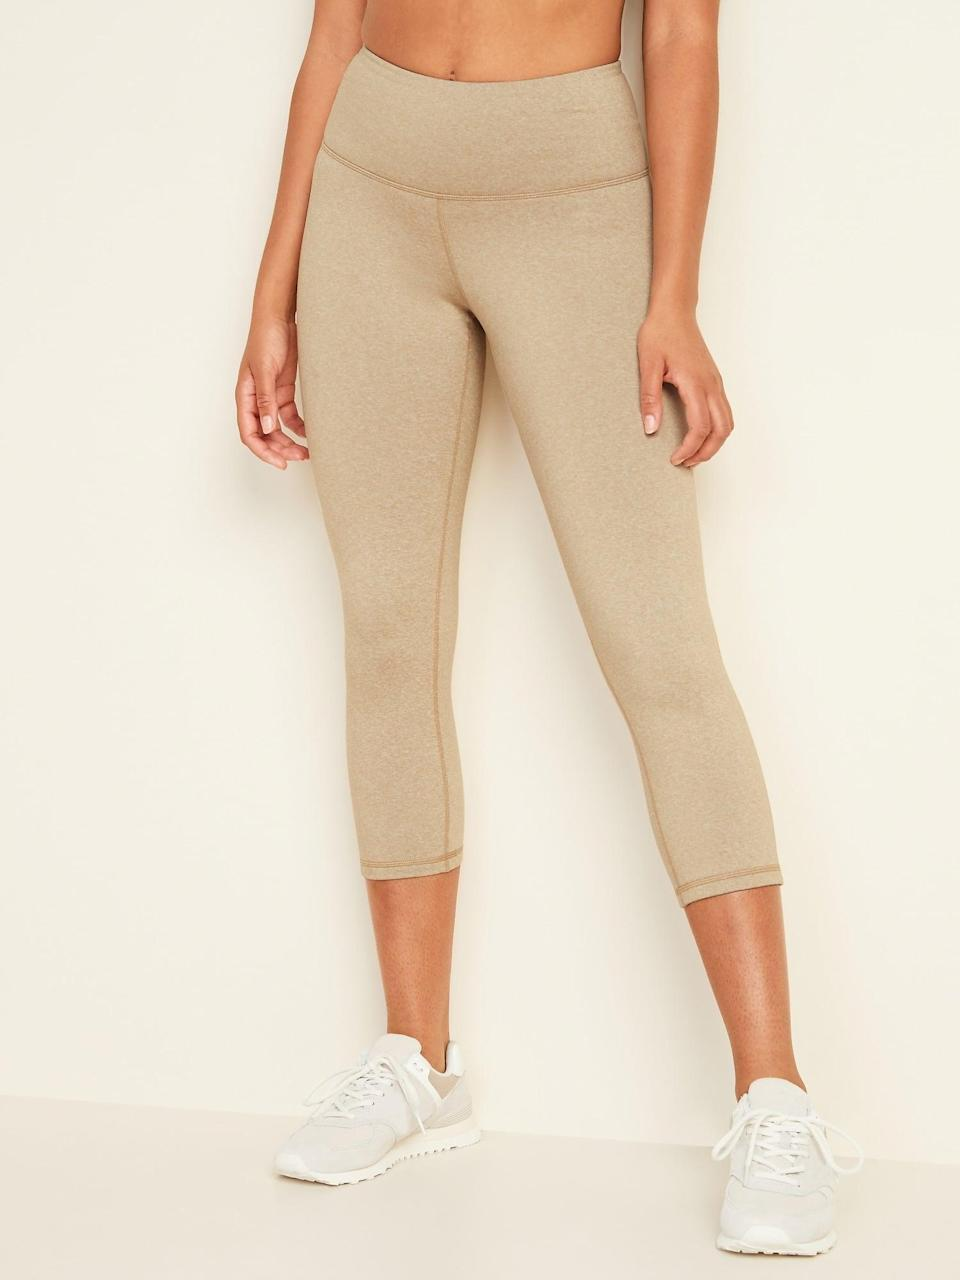 <p>The soft, compressive lining on these <span>Old Navy High-Waisted CozeCore Crop Leggings</span> ($10, originally $30) is like enveloping your legs in a hug you'll want to last long after the workout ends.</p>